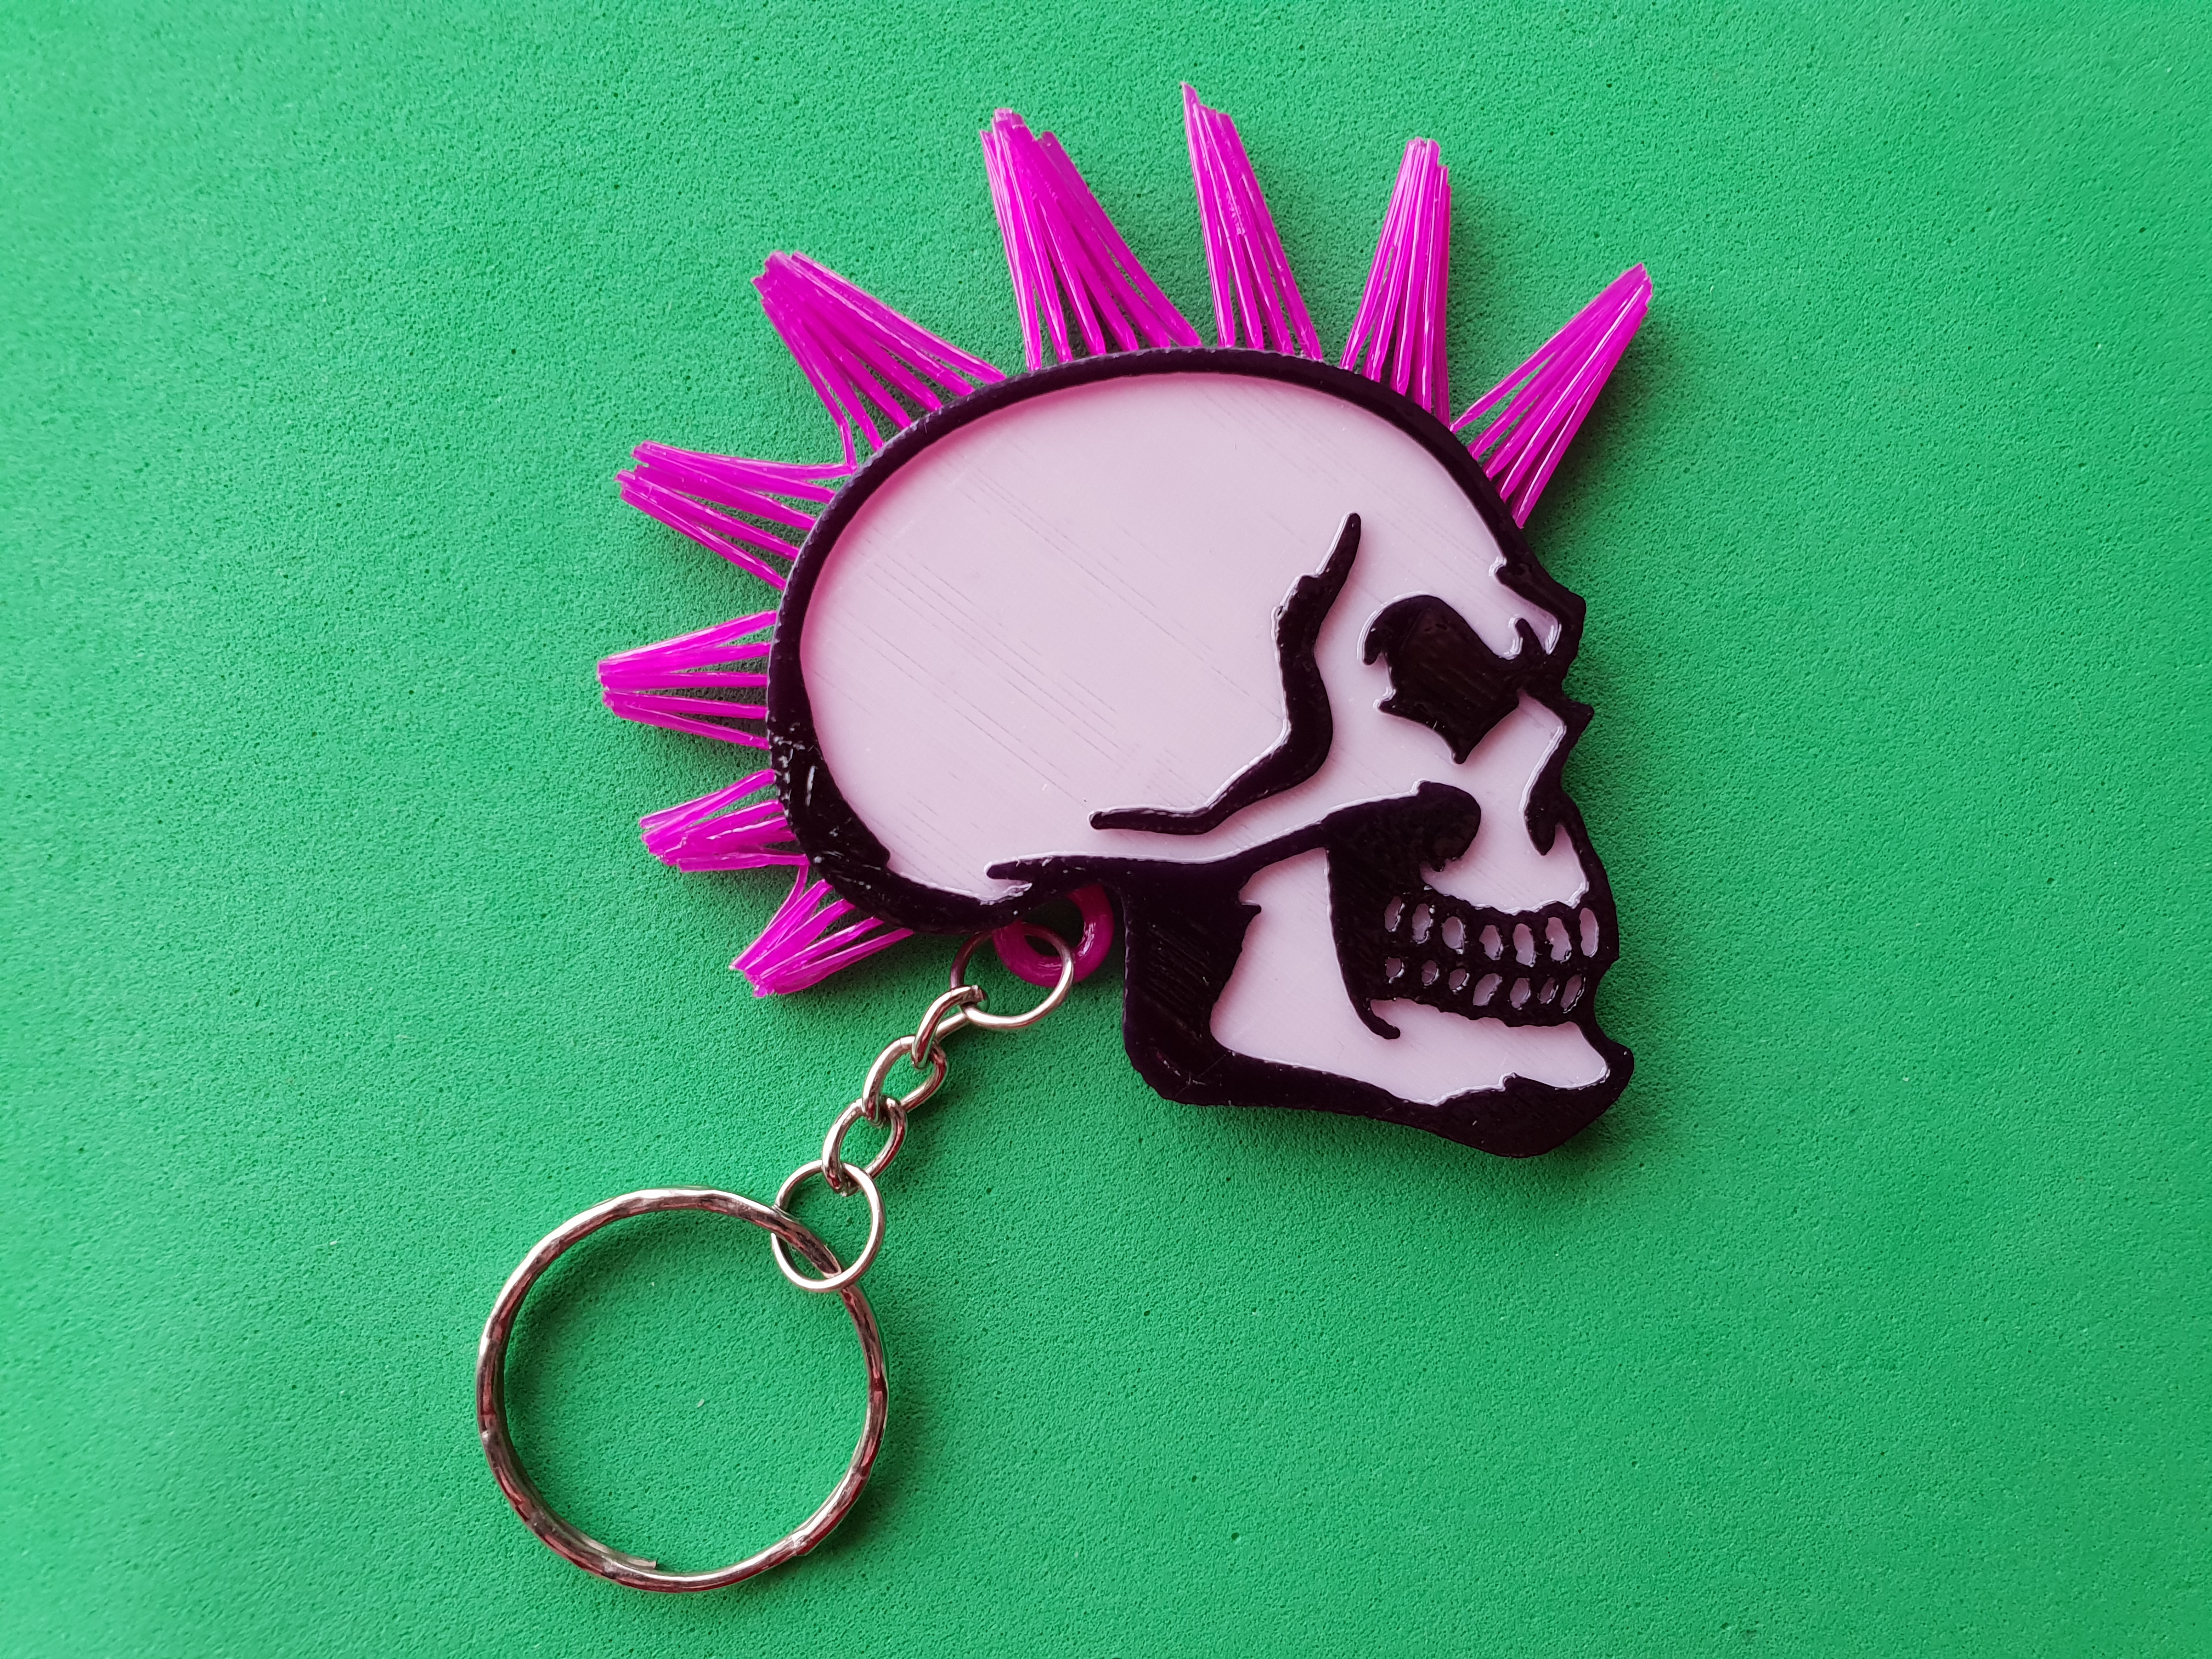 20190516_185138.jpg Download free STL file Skull keychain with hair • 3D printing design, 3dlito